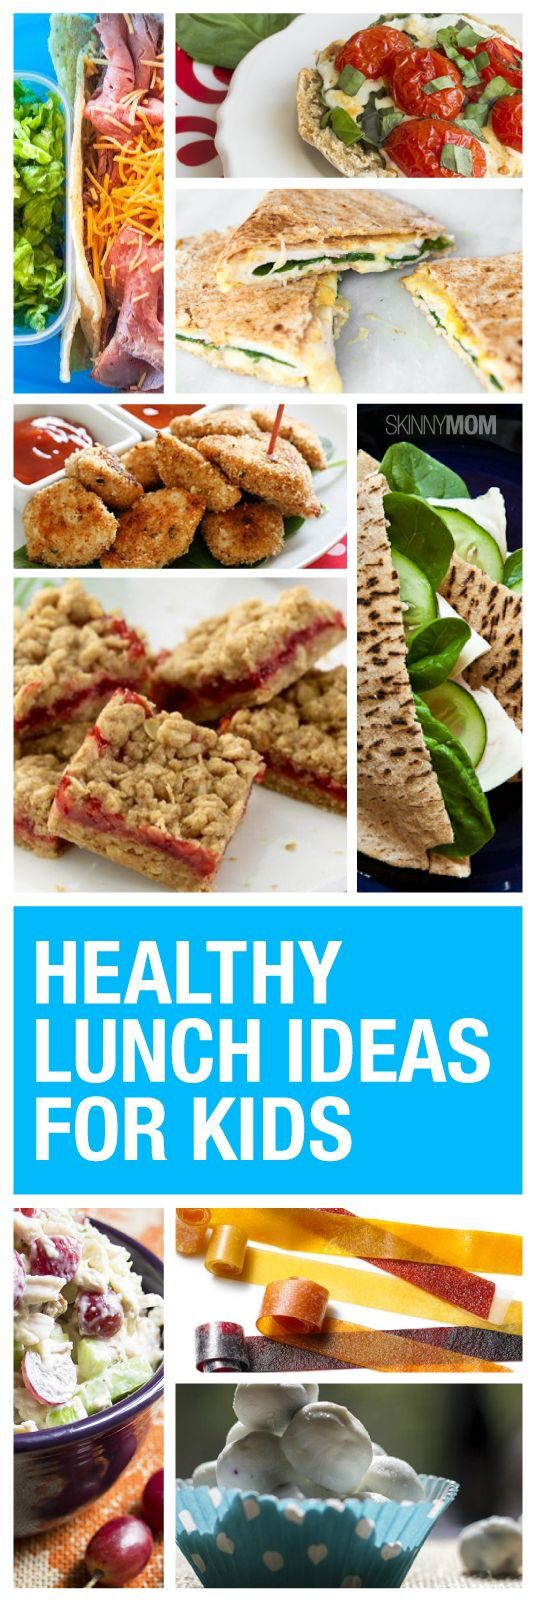 Try out some of these healthy and delicious lunch options for your kiddos this summer. More Kid Lunches, Kids Lunches, Delicious Lunches, For Kids, Lunches Ideas, Healthy Lunches, Lunches Options, Healthy Lunch Ideas, 15 Healthy Kids lunch ideas Try out some of these healthy and delicious lunch options - not just for kids 15 #Healthy Lunch Ideas for Kids